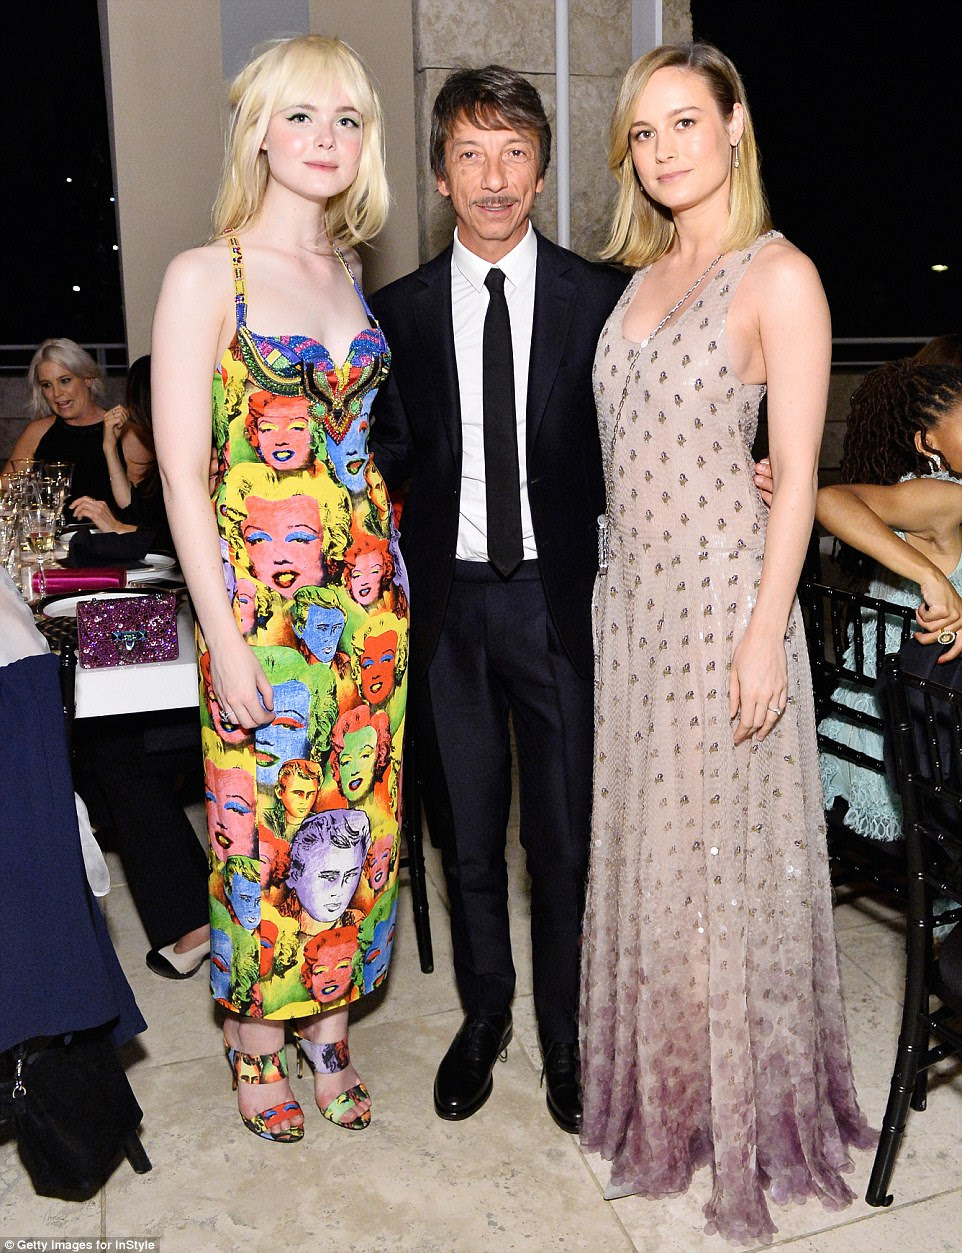 Tasteful trio: Elle, Award winning designer Pierpaolo Piccioli and Brie Larson posed looking glamorous